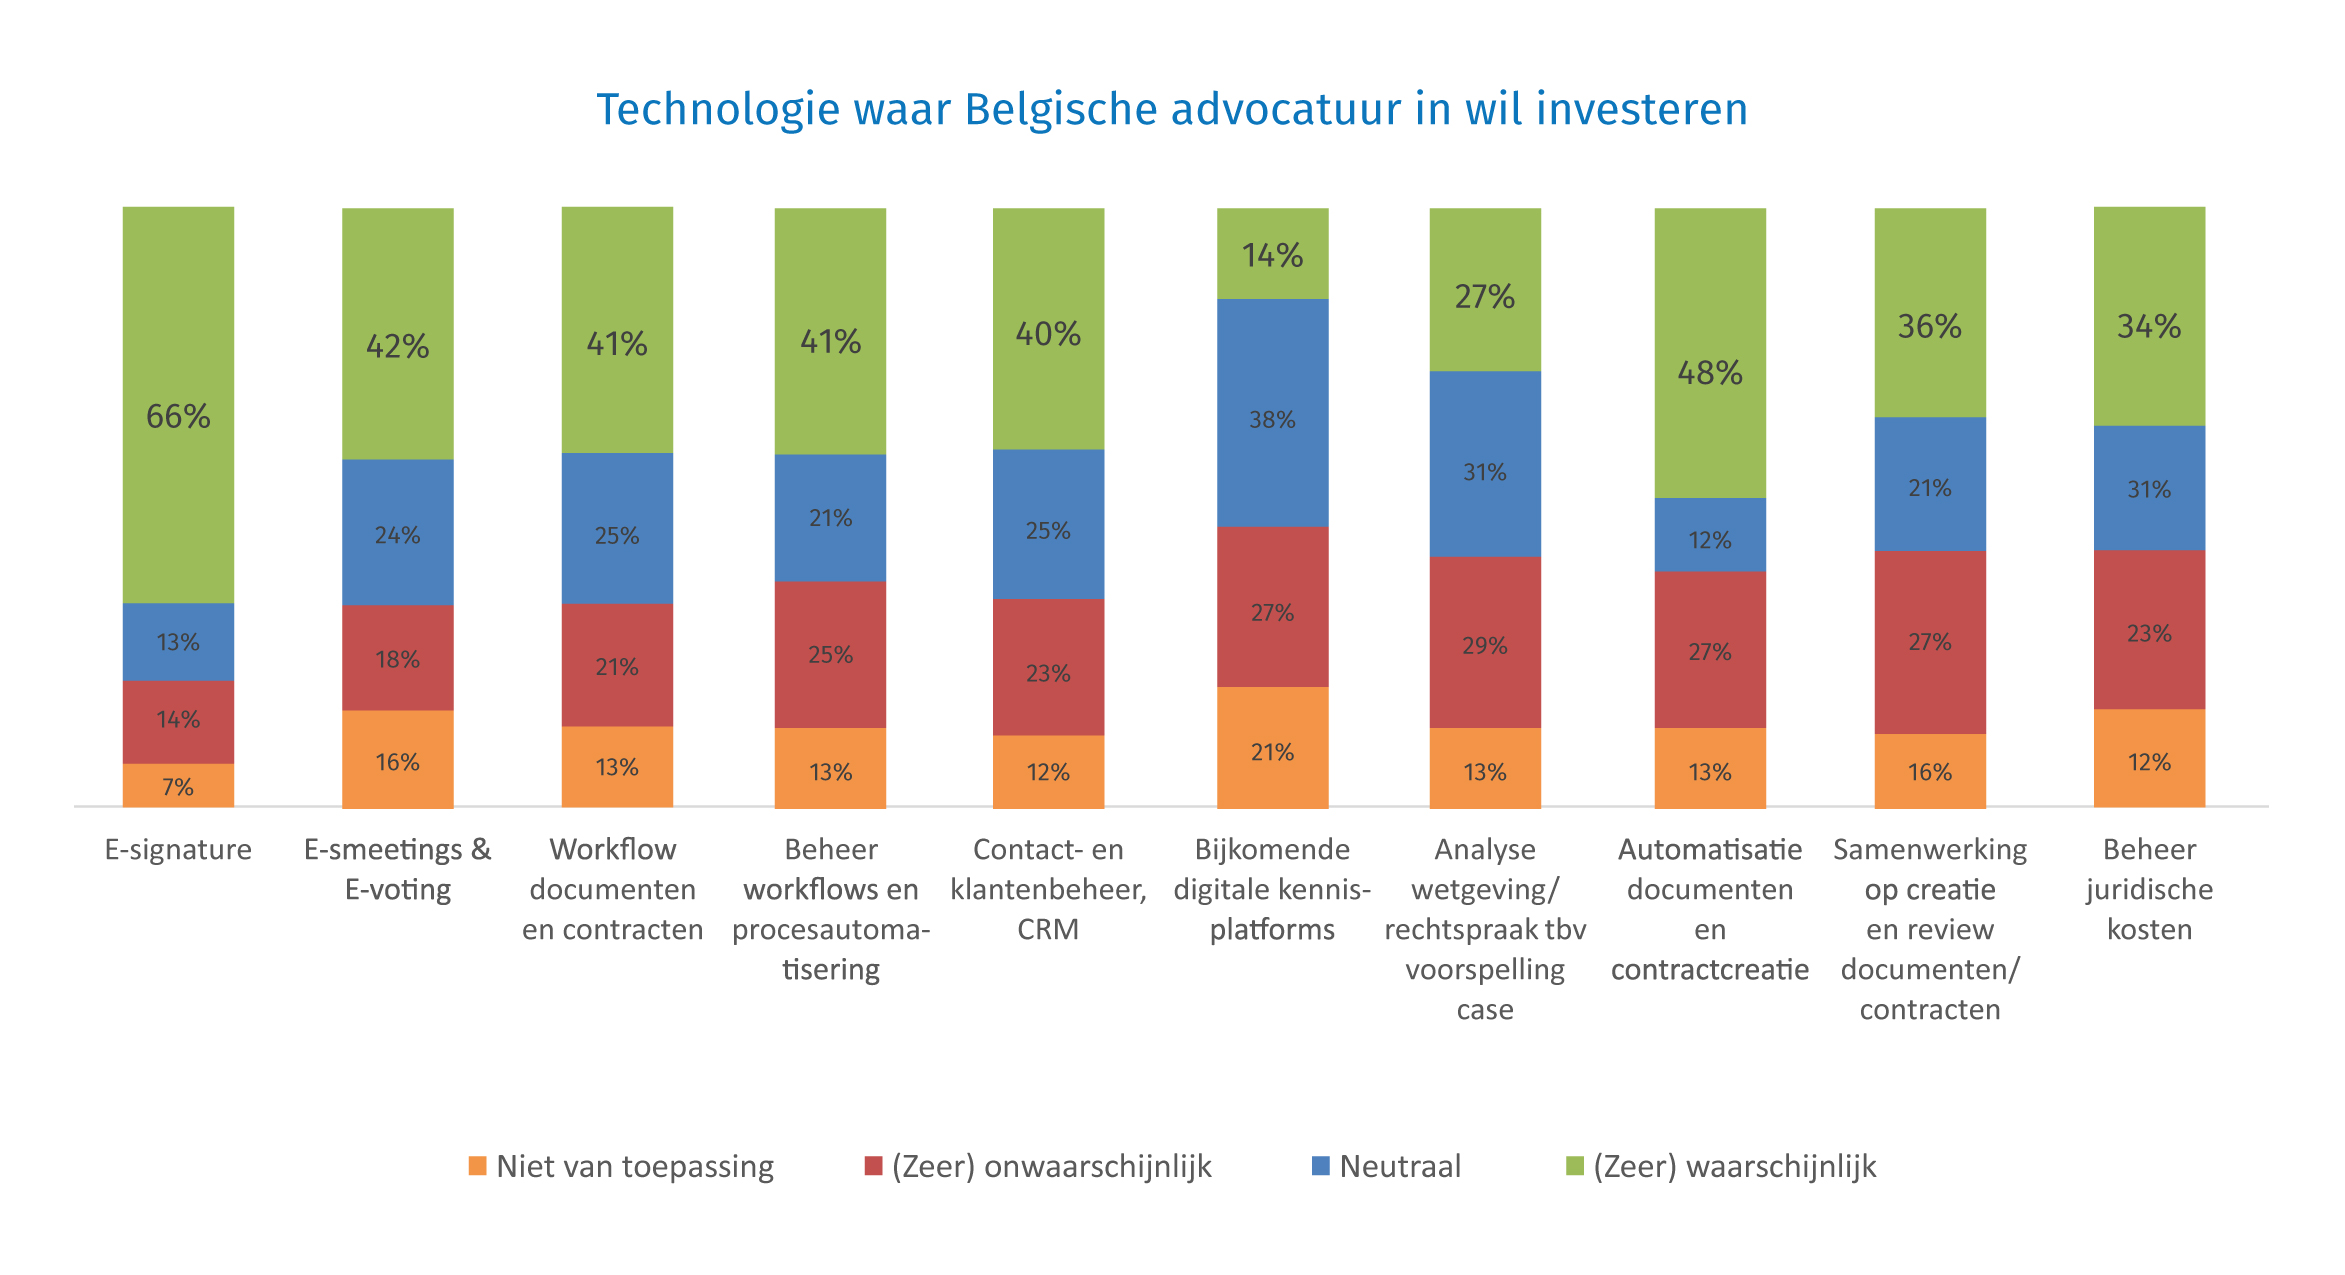 2020-Covid-Impact-Top-Technologies-BE-NL